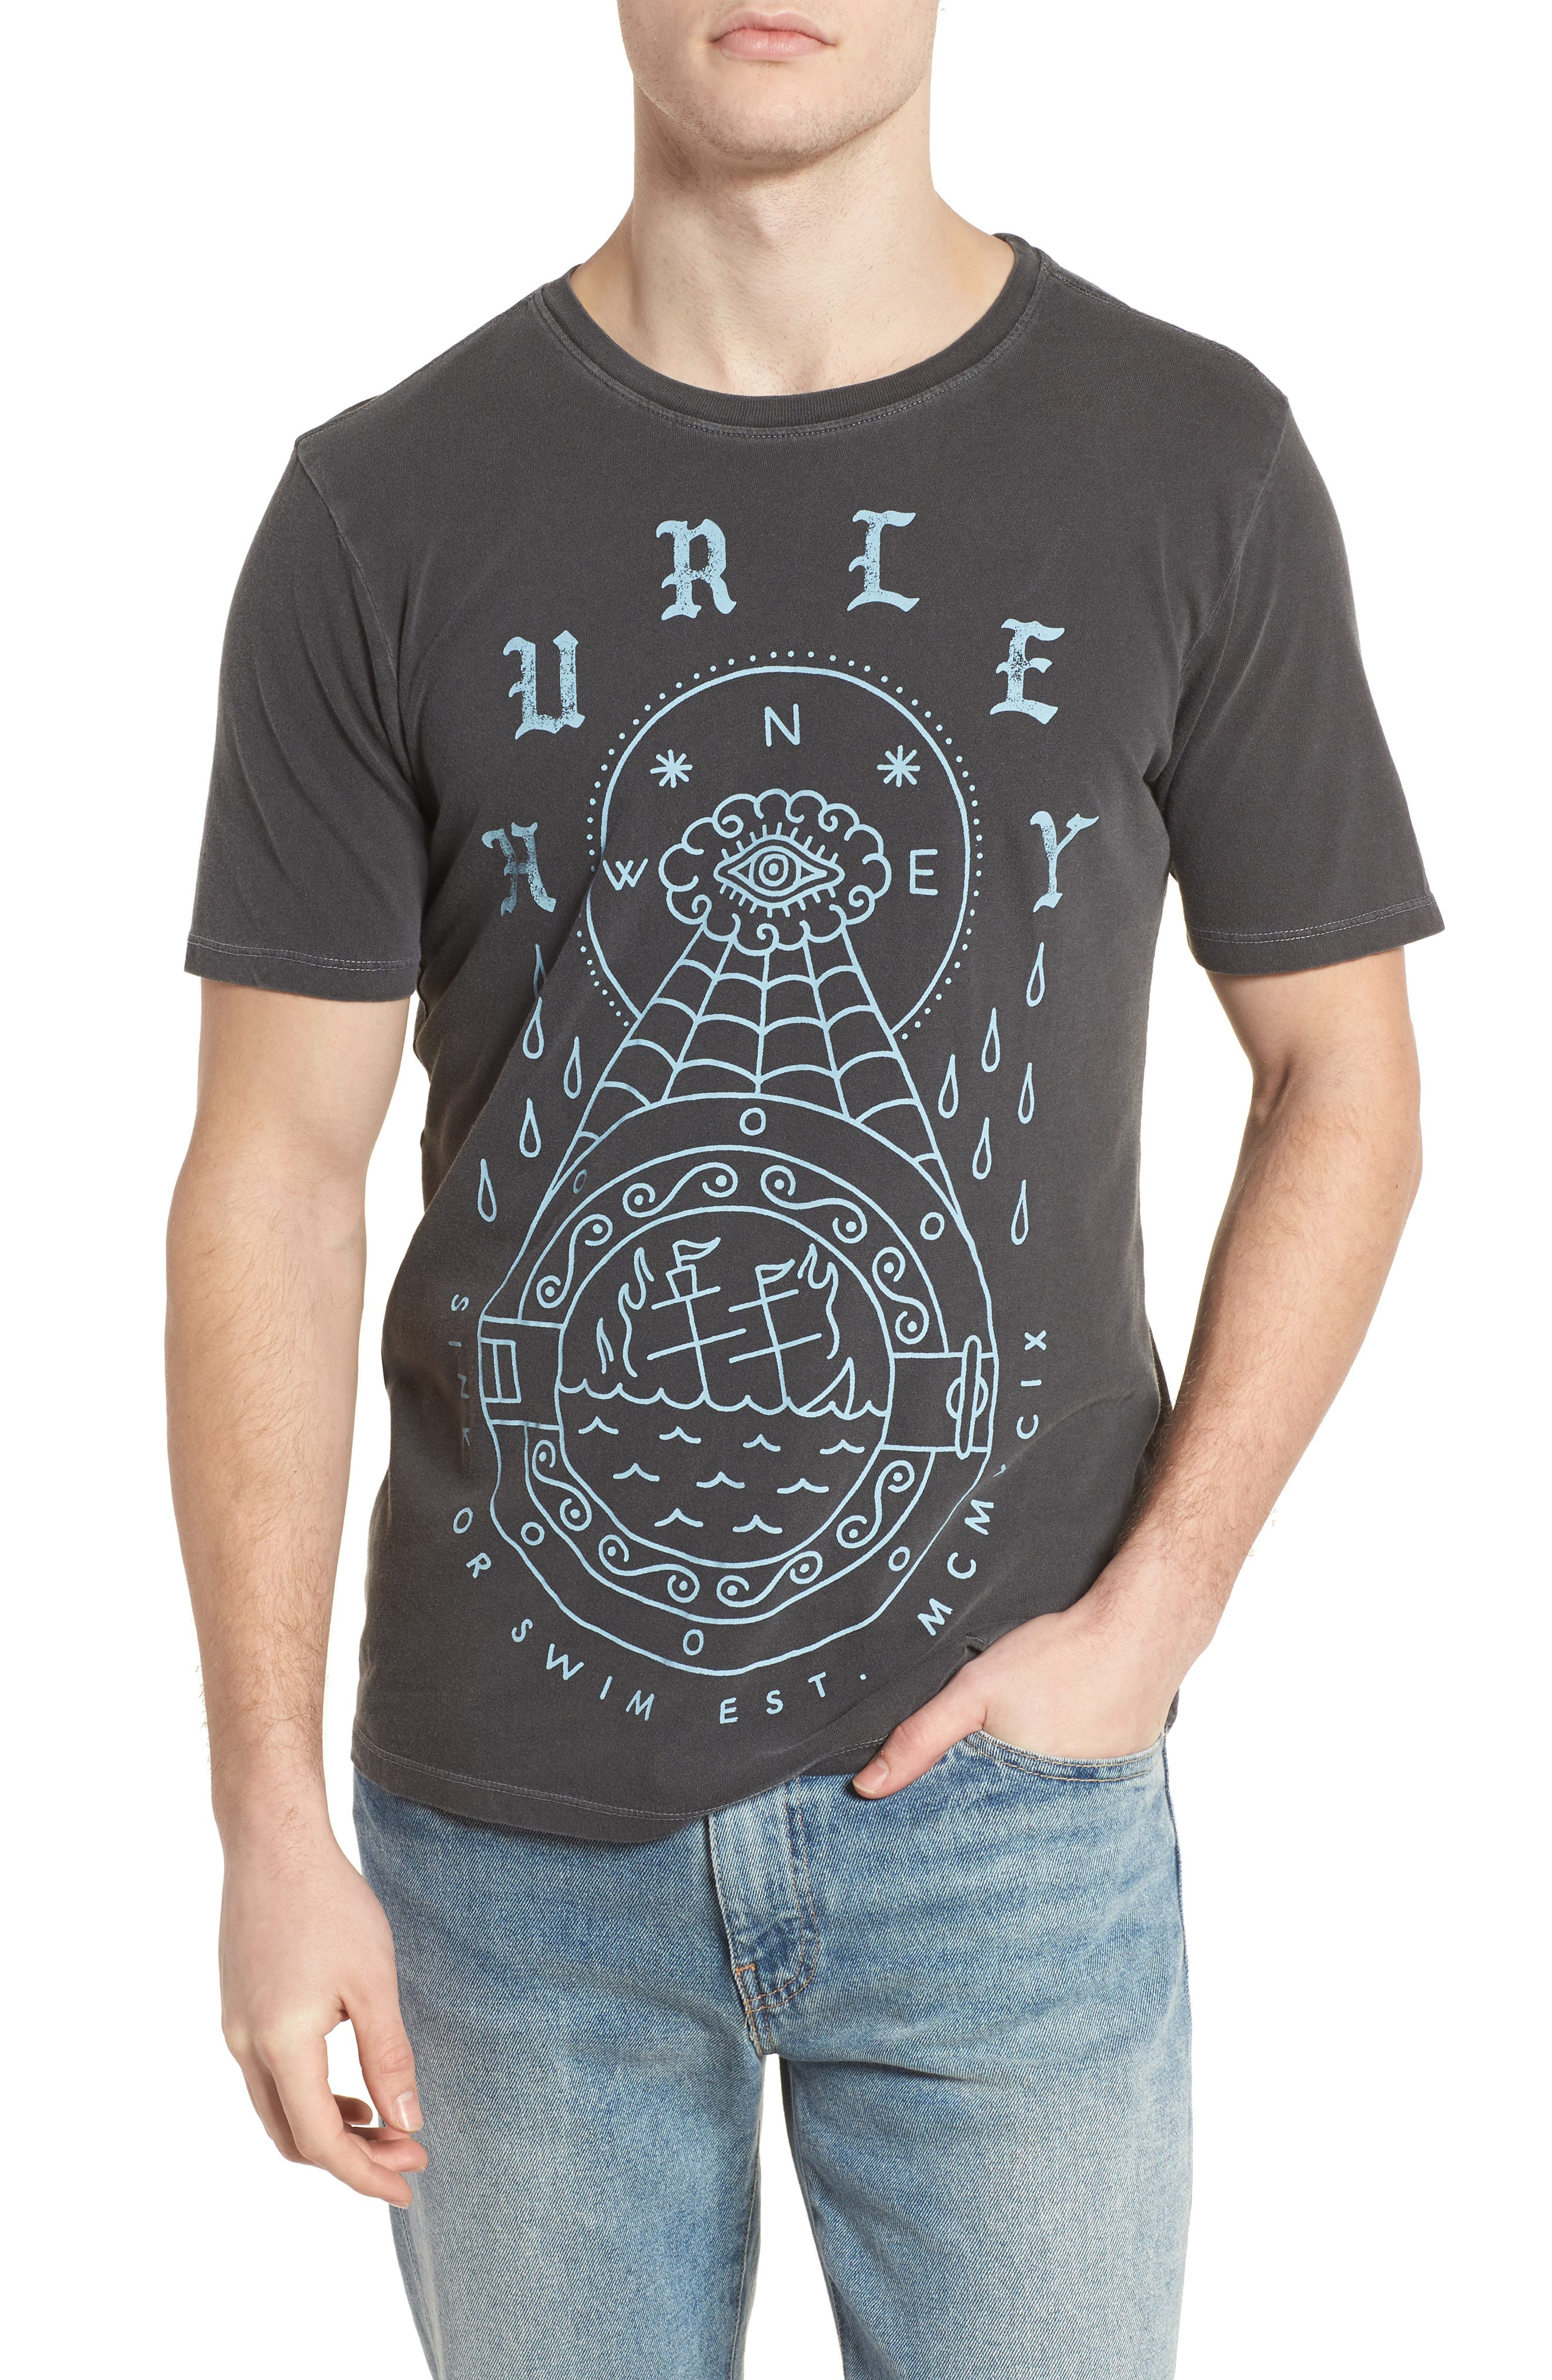 HURLEY PORTS DESTROY GRIND GRAPHIC T-SHIRT